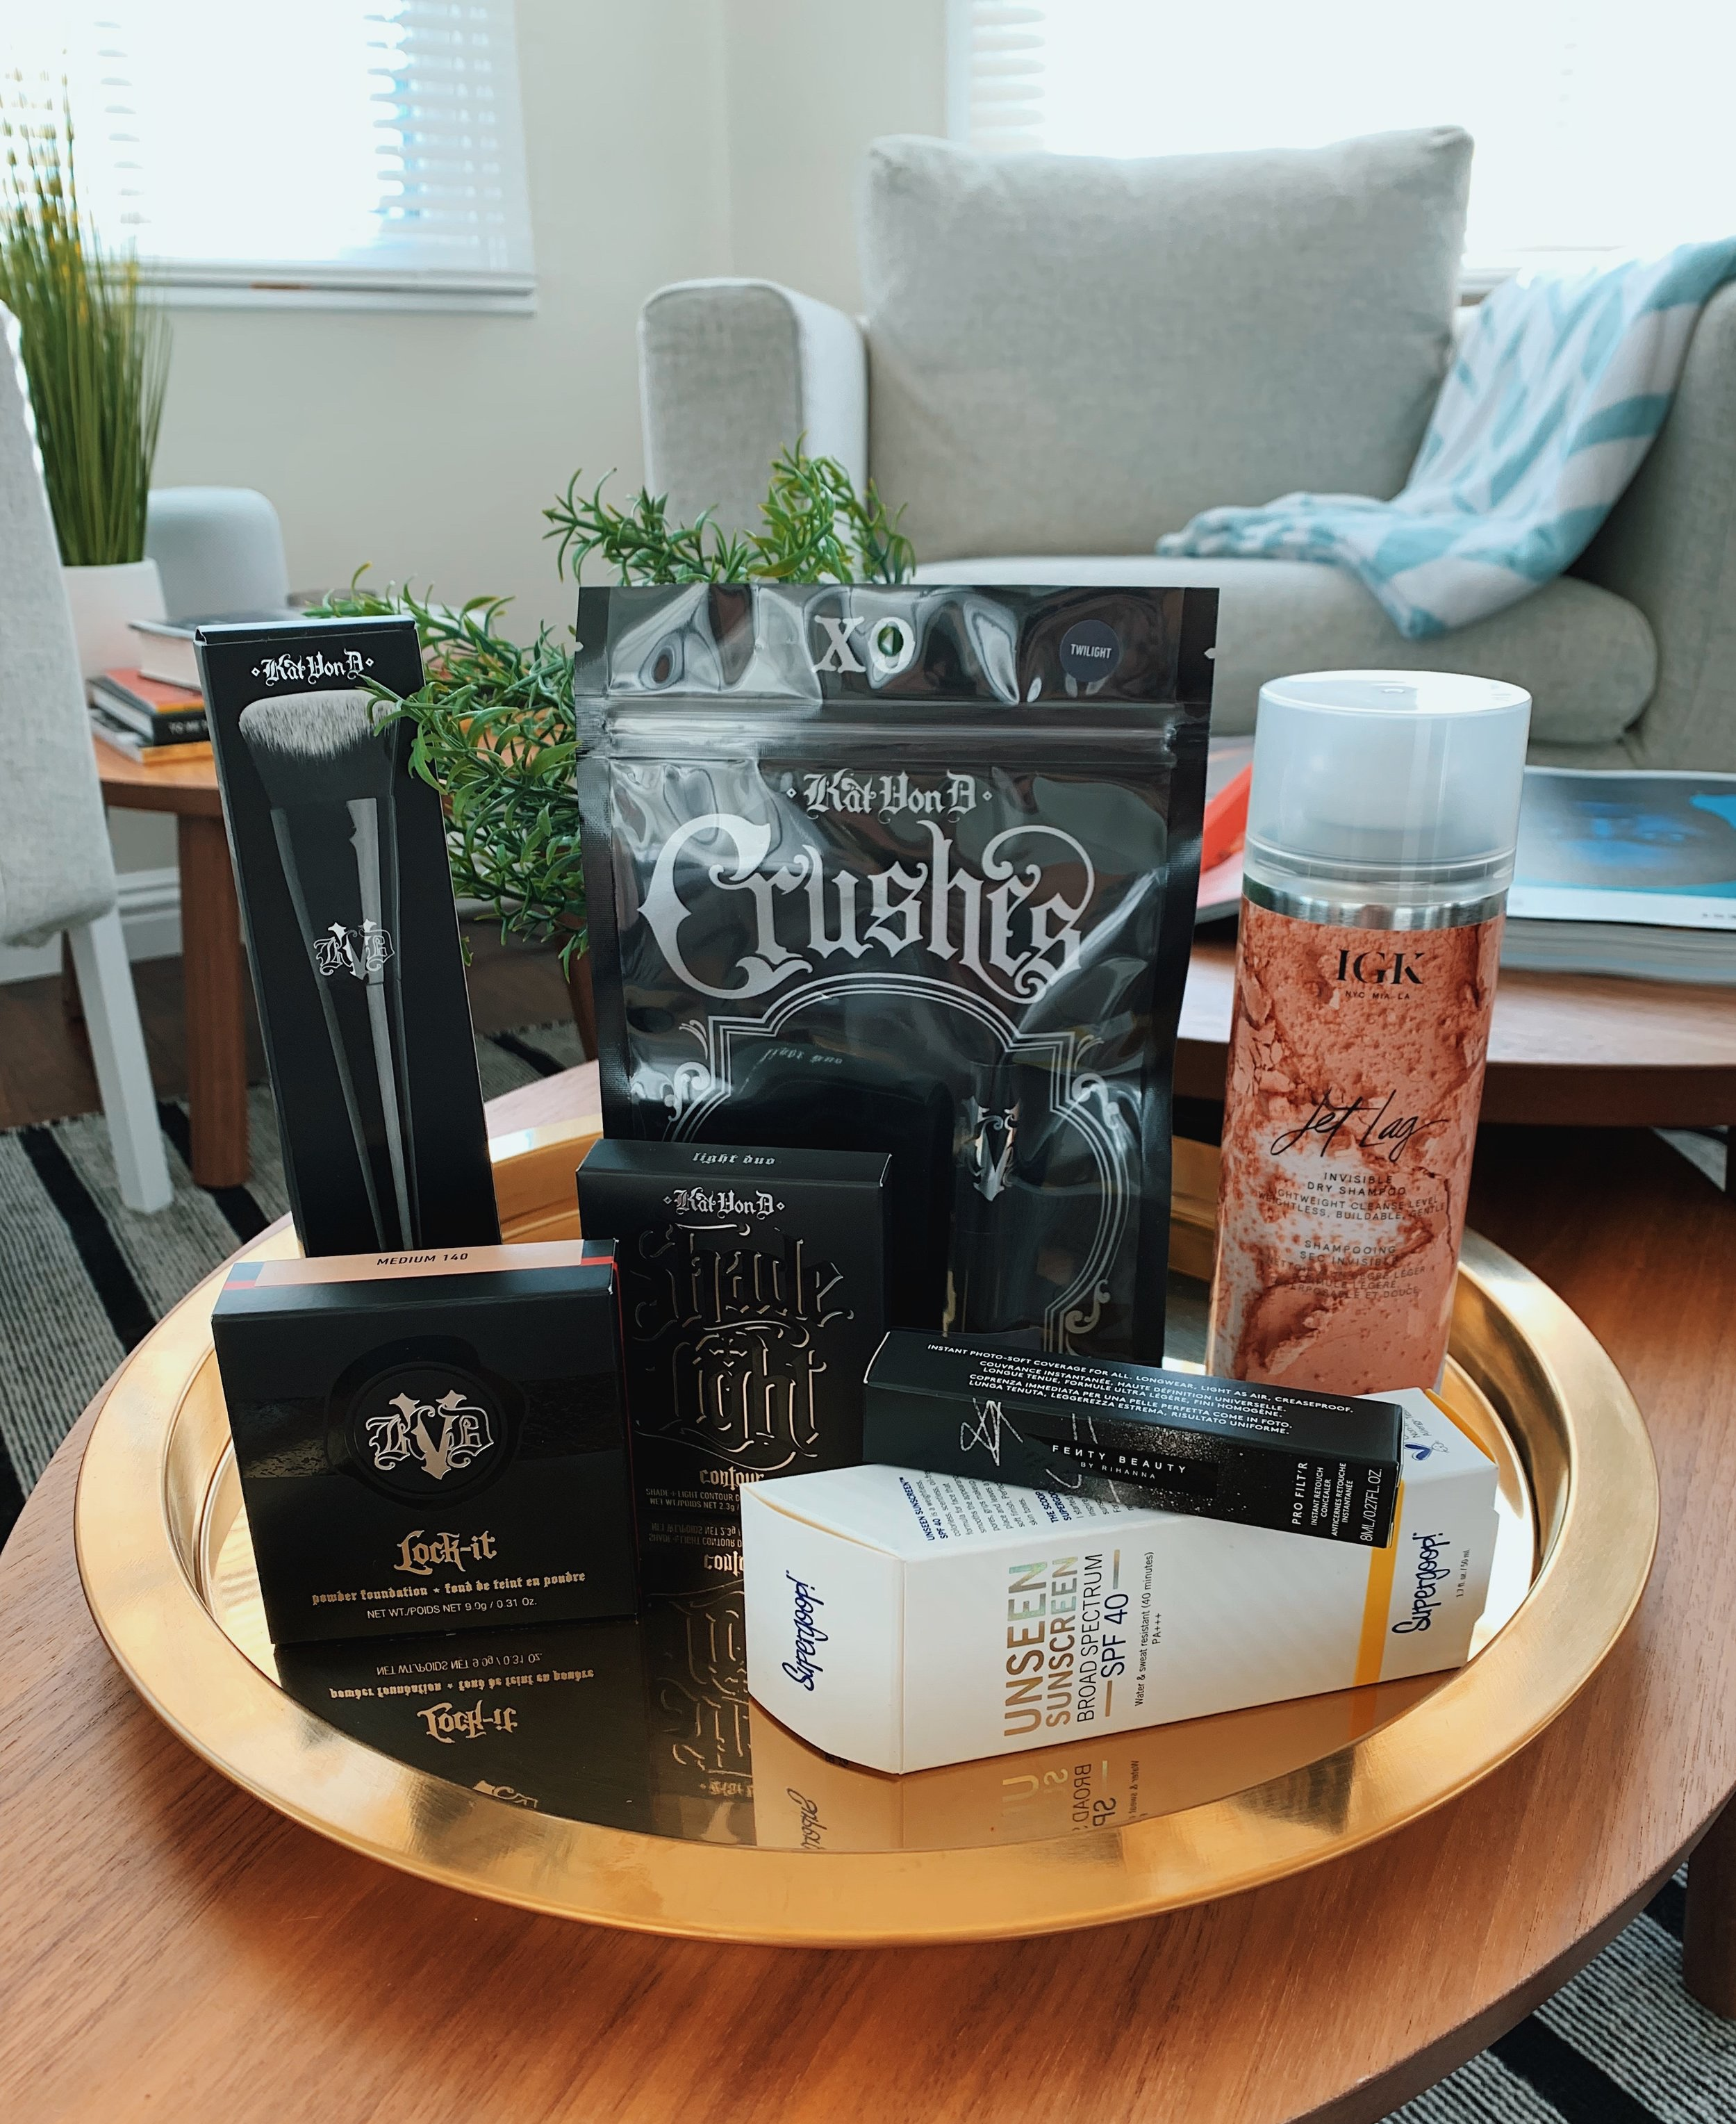 My new maquillage - Once again, I went to Sephora for the new Fenty Beauty concealer..and $250 later, I had a bag full of magical new items! What is all this you ask? Let me tell you! I got the Supergoop! Unseen Sunscreen for a protective base that smooths my pores. After applying the Fenty concealer on needed areas, I gently press the new Kat Von D Lock-It Powder Foundation all over my face and neck with the Kat Von D Lock-It Edge Foundation Brush. Continuing in the same brand line, the new Kat Von D Shade+Light Contour Duo is a much more compact option than the full face contour palette. And then, surprise, surprise! This Crushes stick that isn't on the Sephora website nor the Kat Von D website (yet?!), but is a stick version of this Twilight eyeshadow. I'm very excited to try it! Lastly, not makeup related, but I'm trying this IGK Jet Lag Dry Shampoo and hopefully works better than the Bumble & Bumble one I've been using!